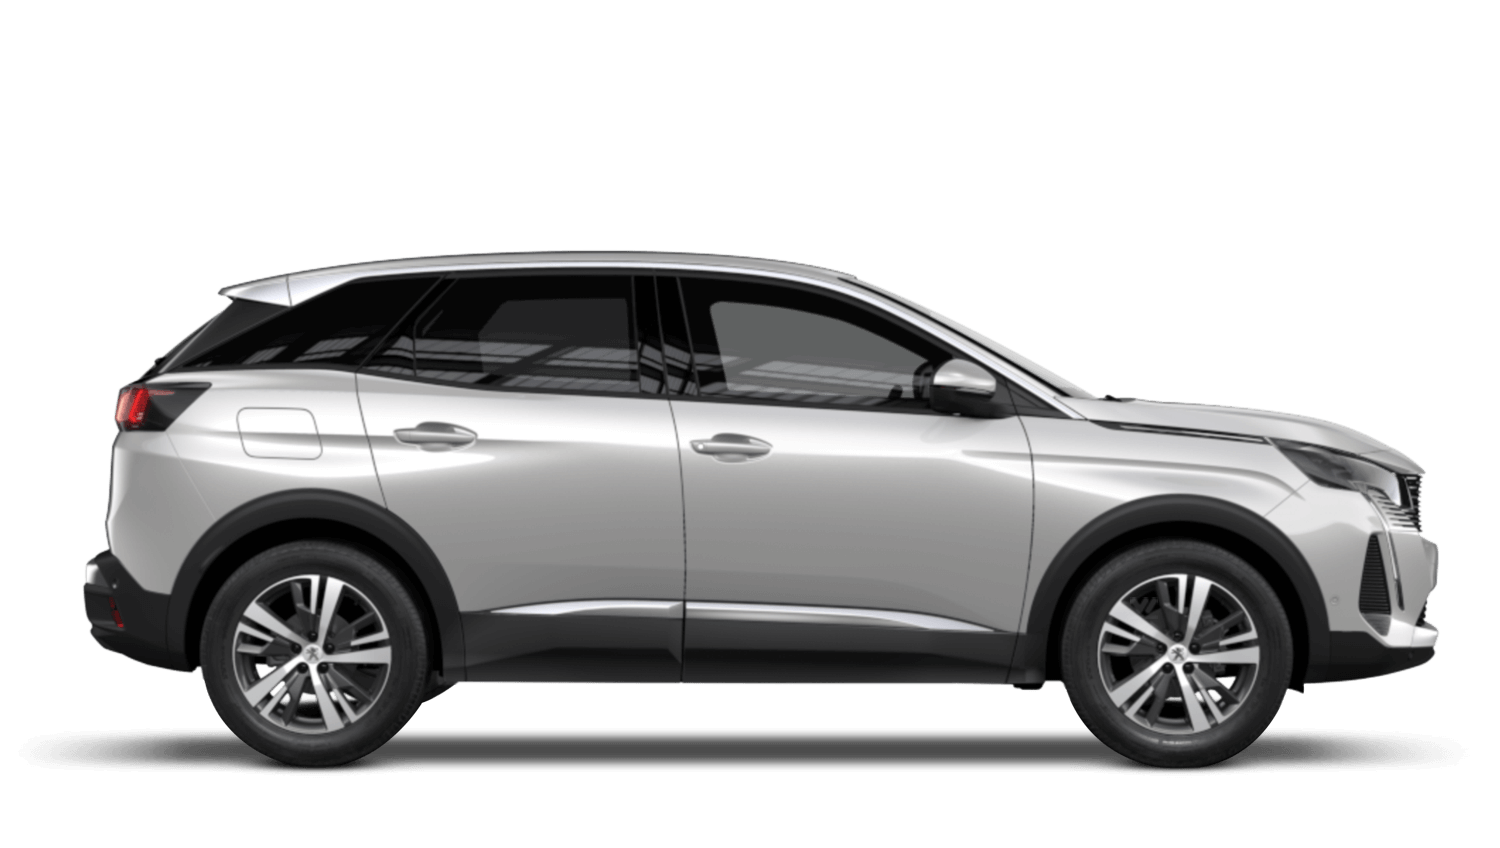 New 3008 SUV Hybrid Business Offers